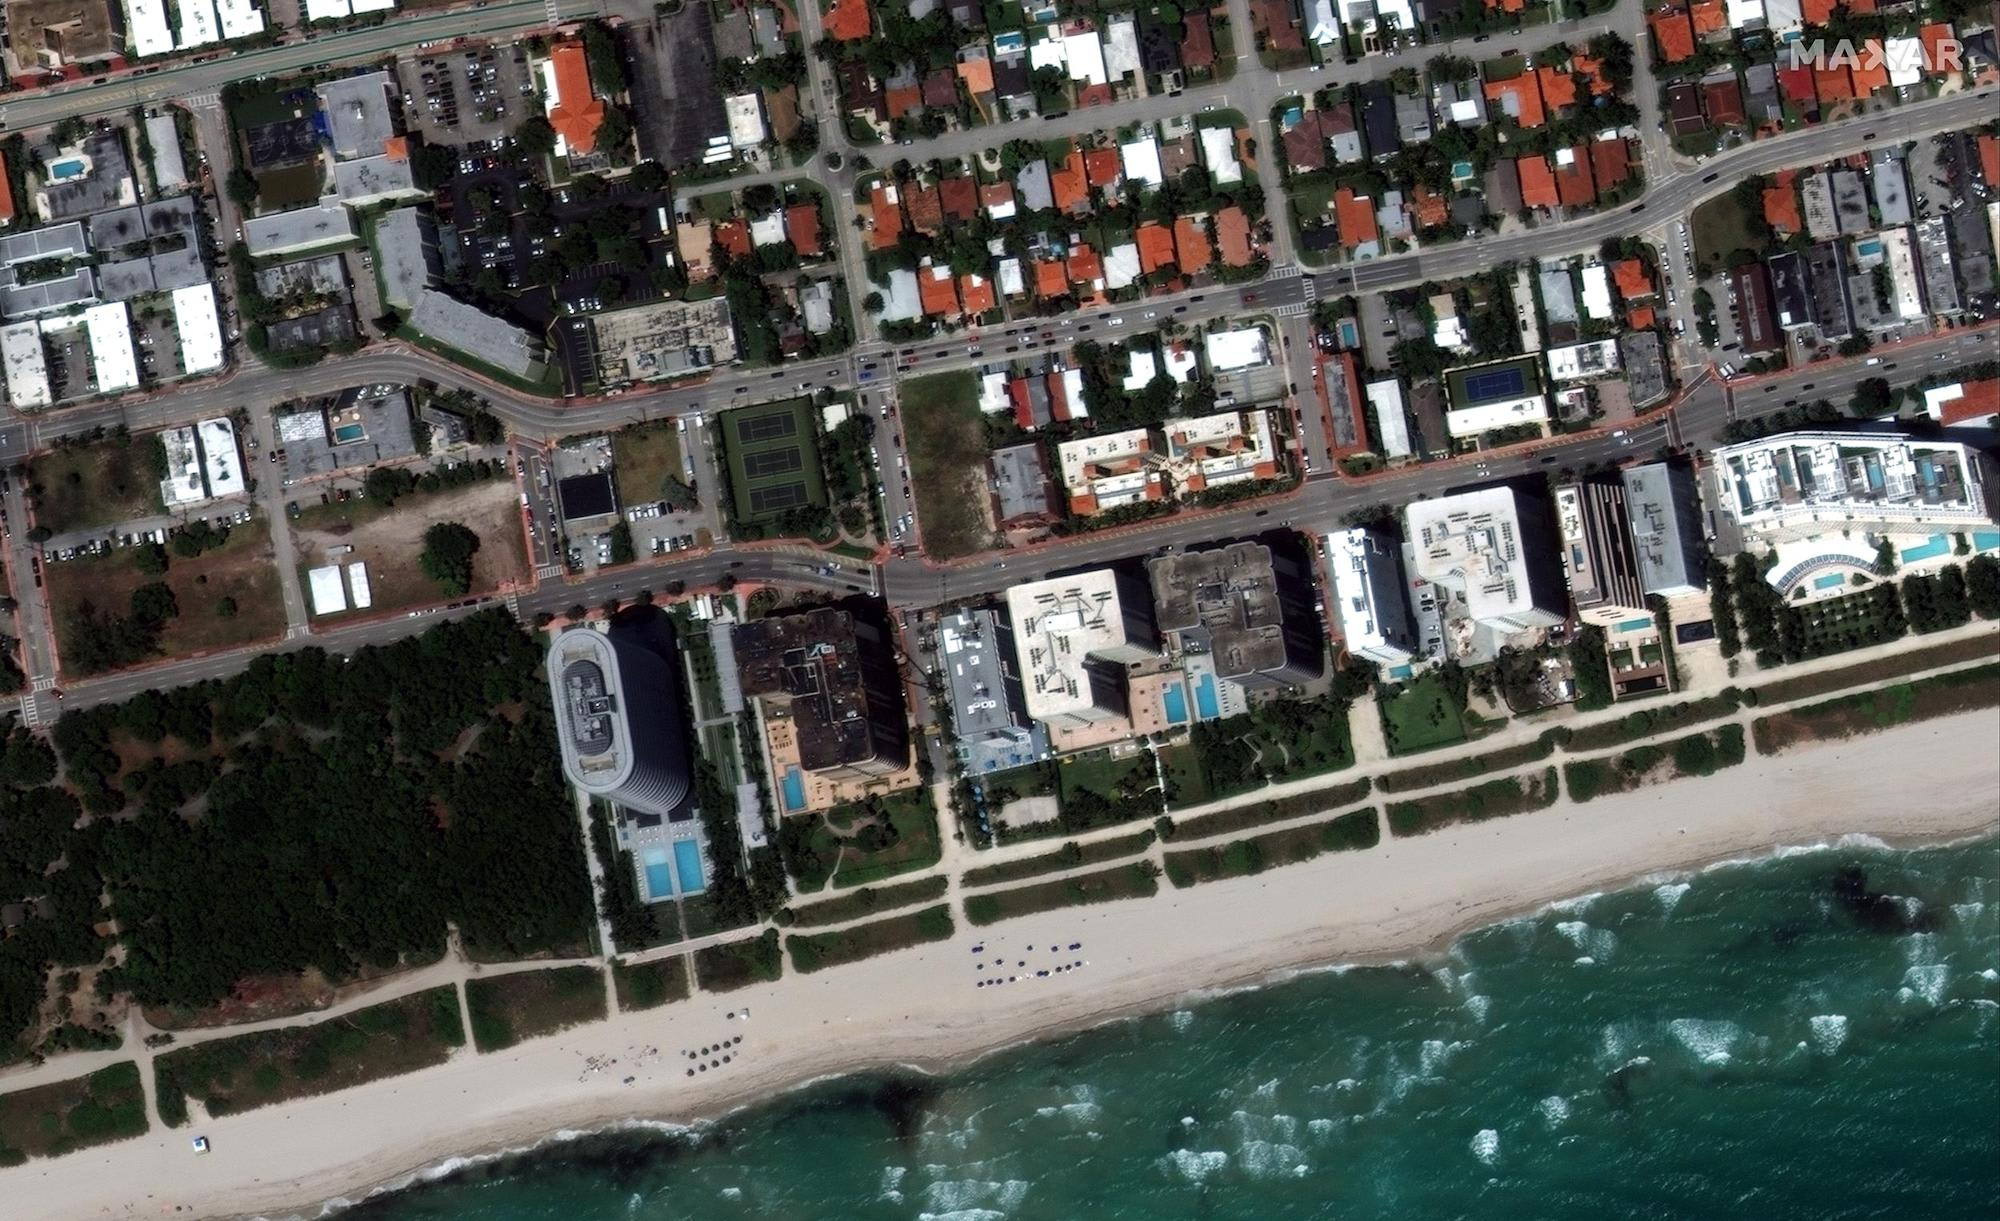 Surfside collapse could turn real estate market into feeding frenzy for coastal developers